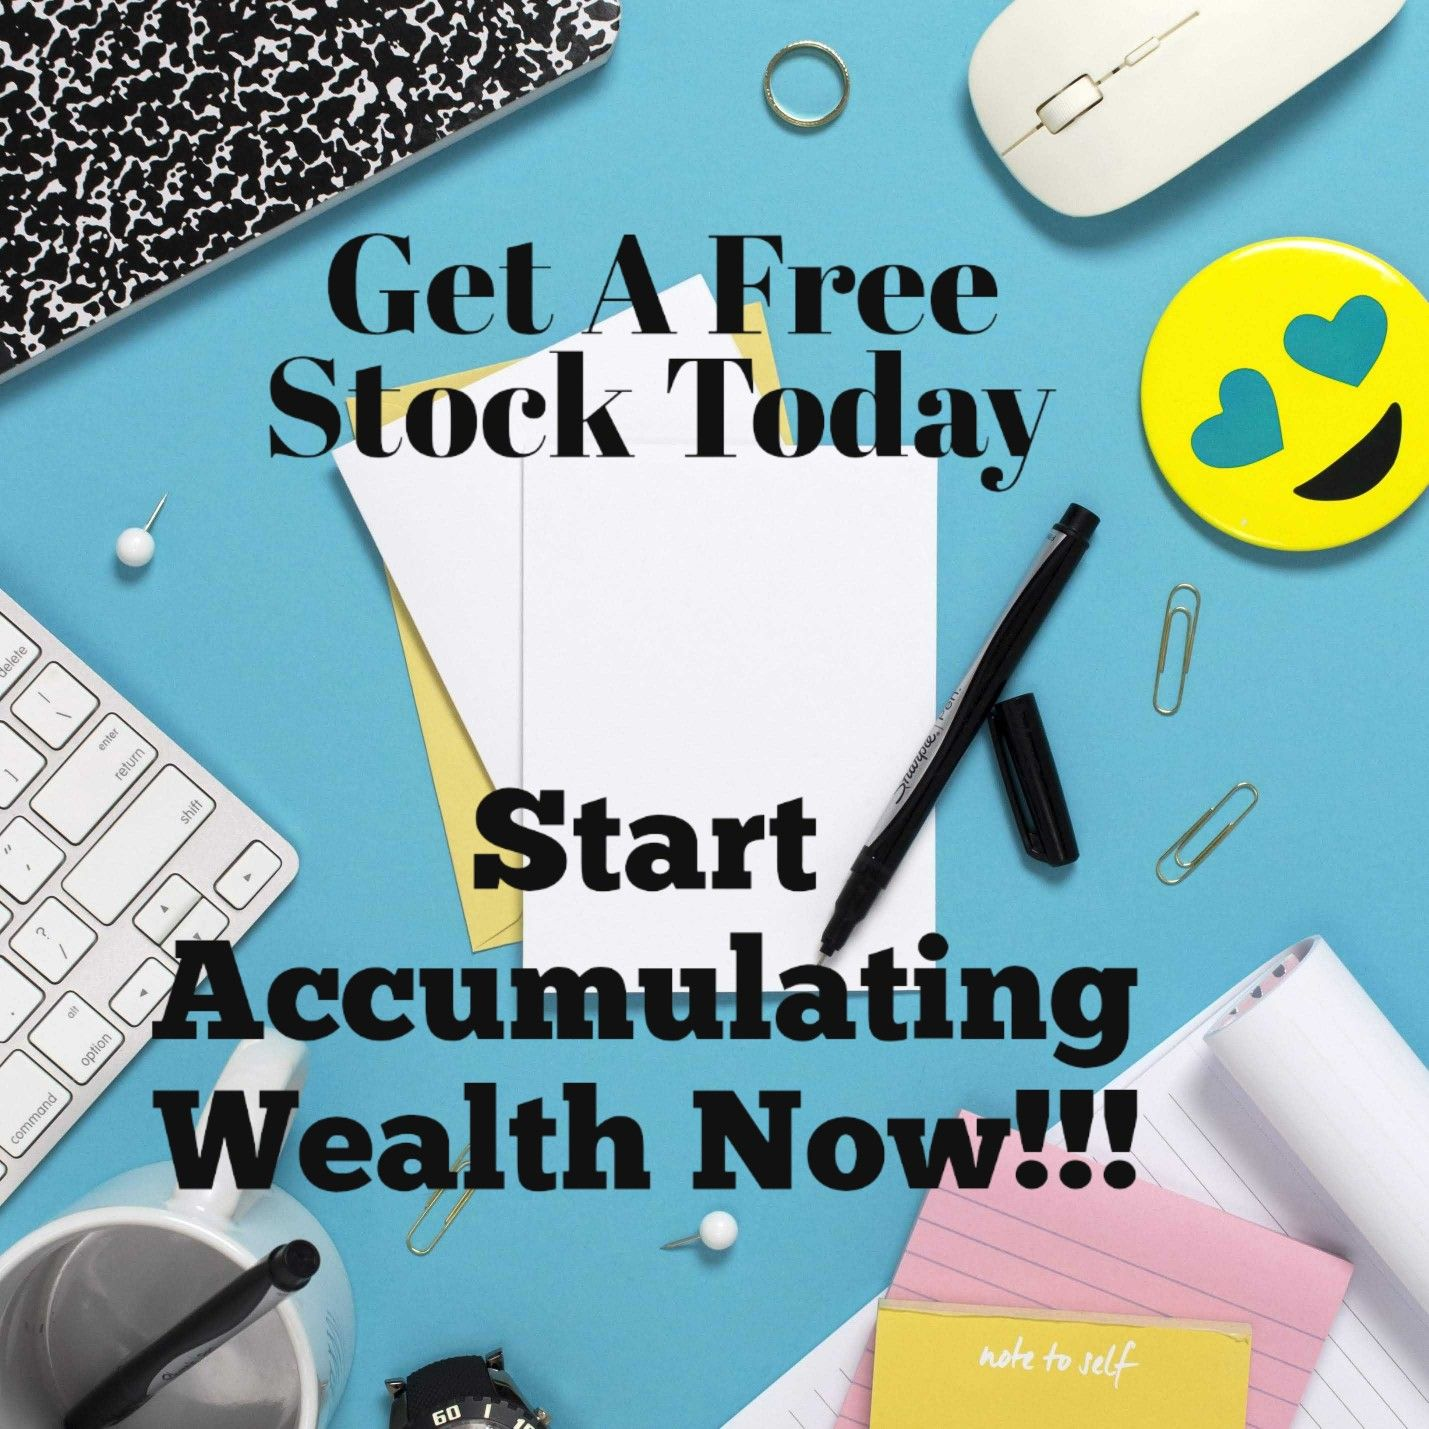 Are You Looking For Information On Investing For Beginners